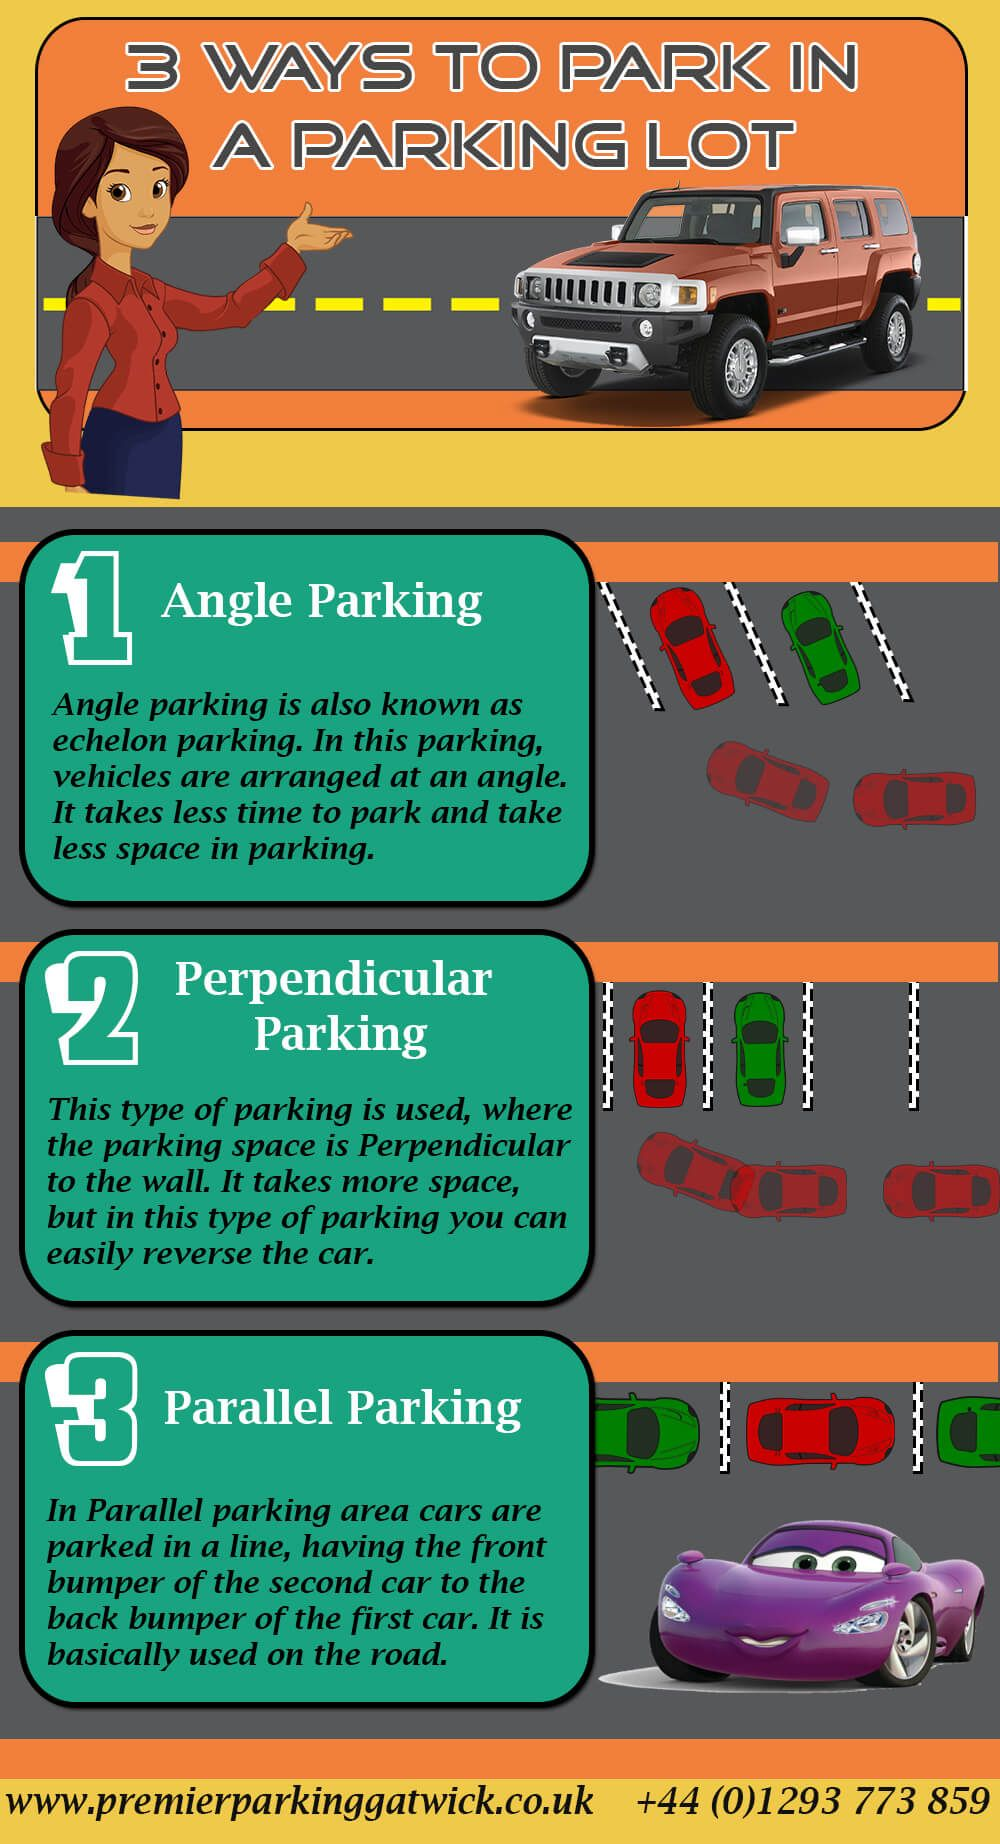 3 ways to park in a parking lot premier valet parking pinterest premier parking provides safe and secure airport parking near gatwick airport book online and secure your cheap holiday airport parking now kristyandbryce Images